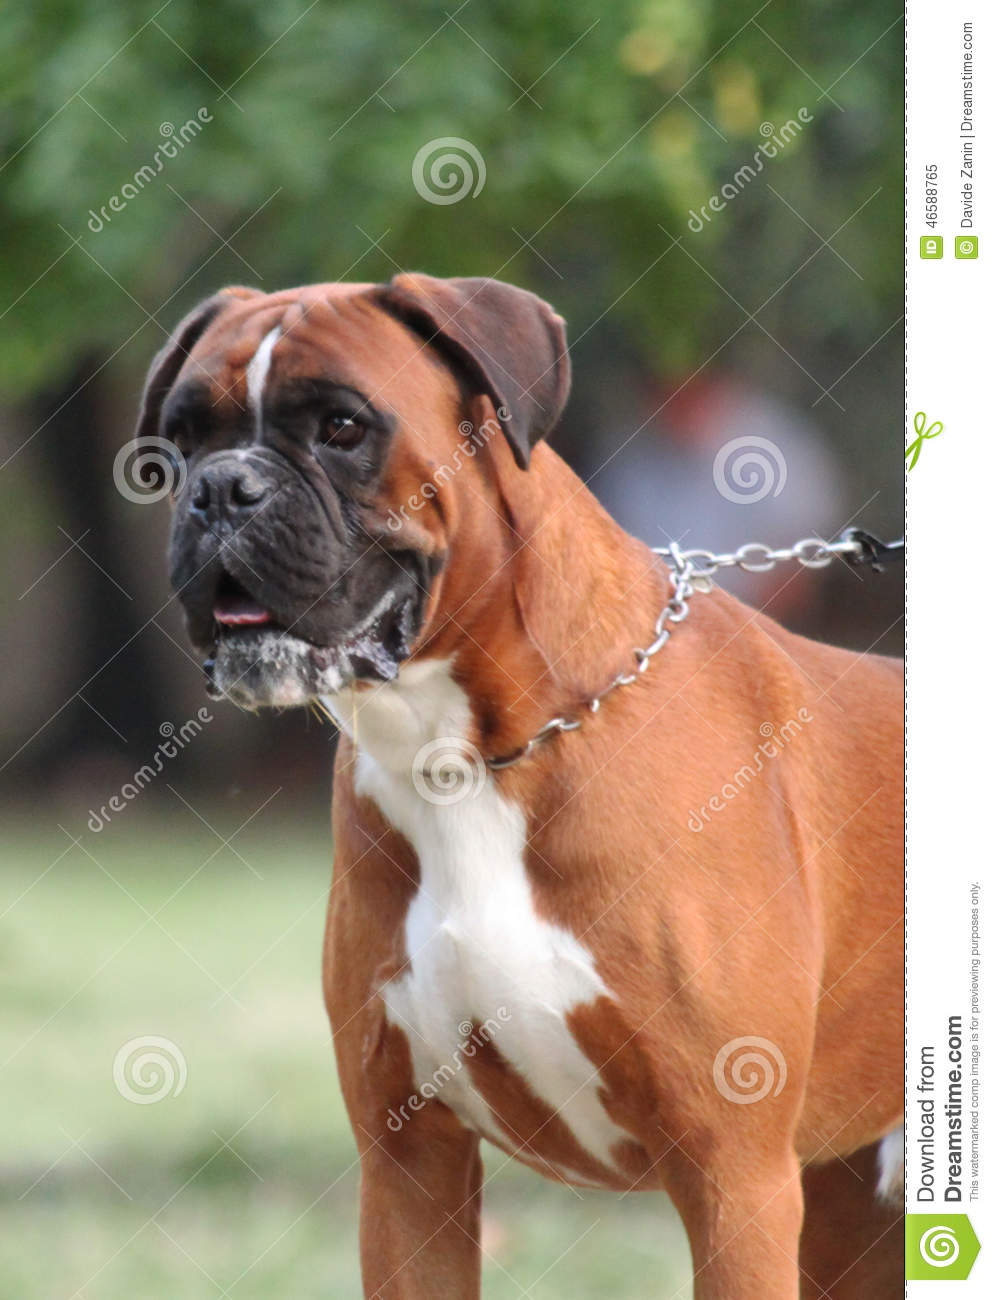 The Boxer dog